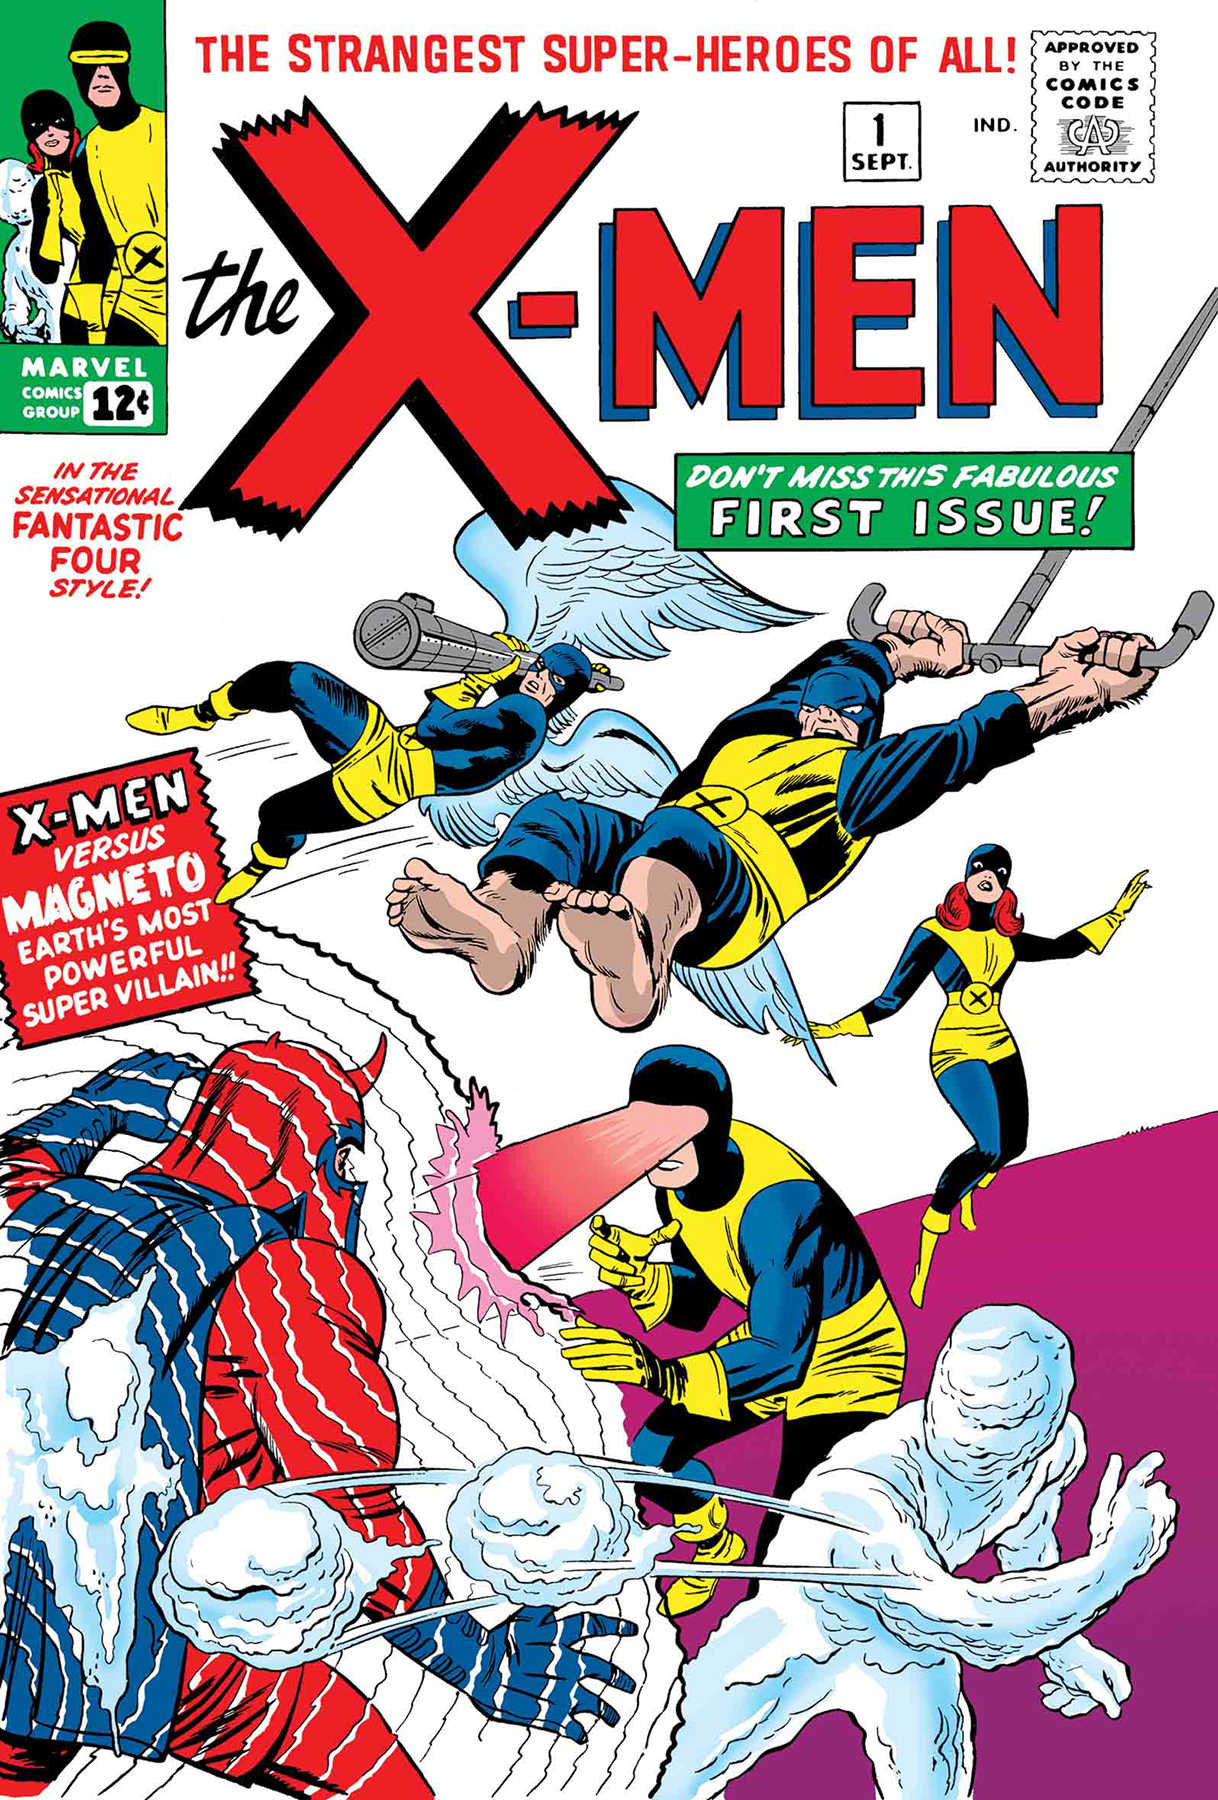 TRUE BELIEVERS X-MEN #1